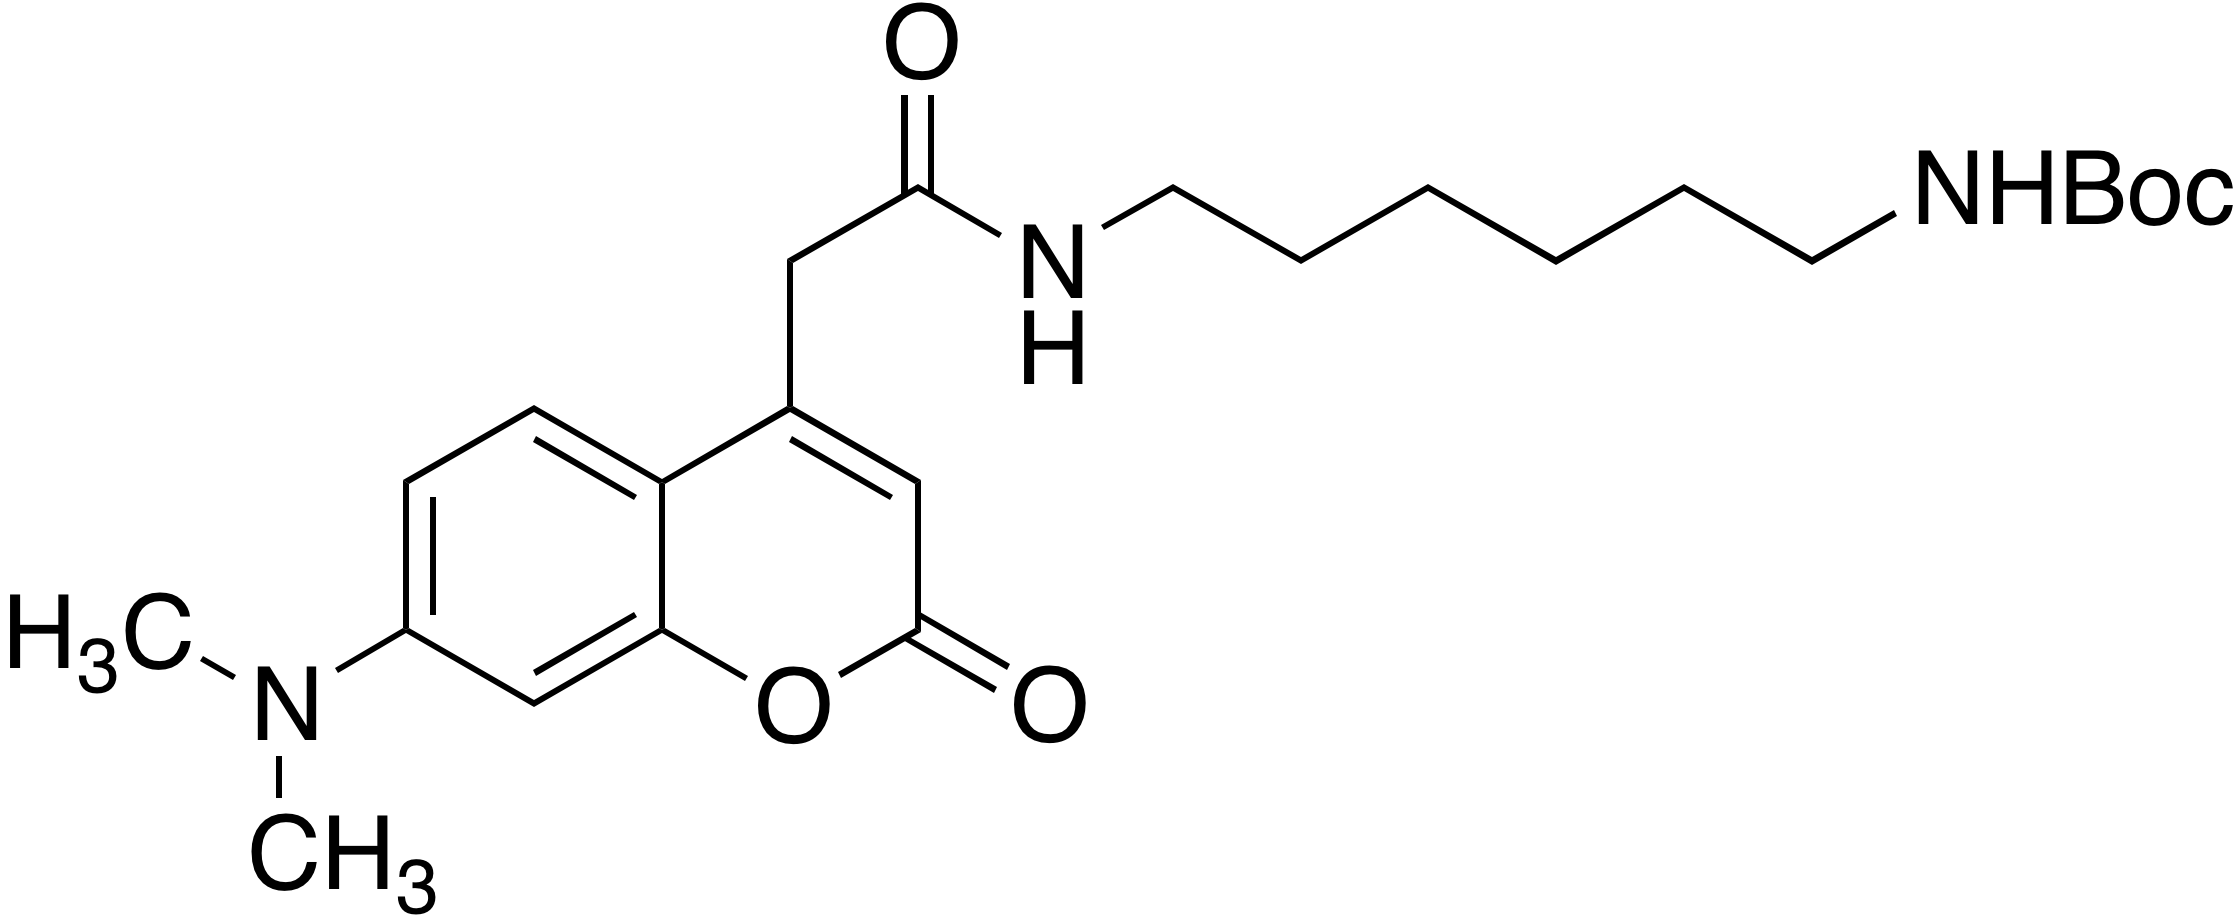 N-(6-Boc-aminohexyl)-7-dimethylaminocoumarin-4-acetamide